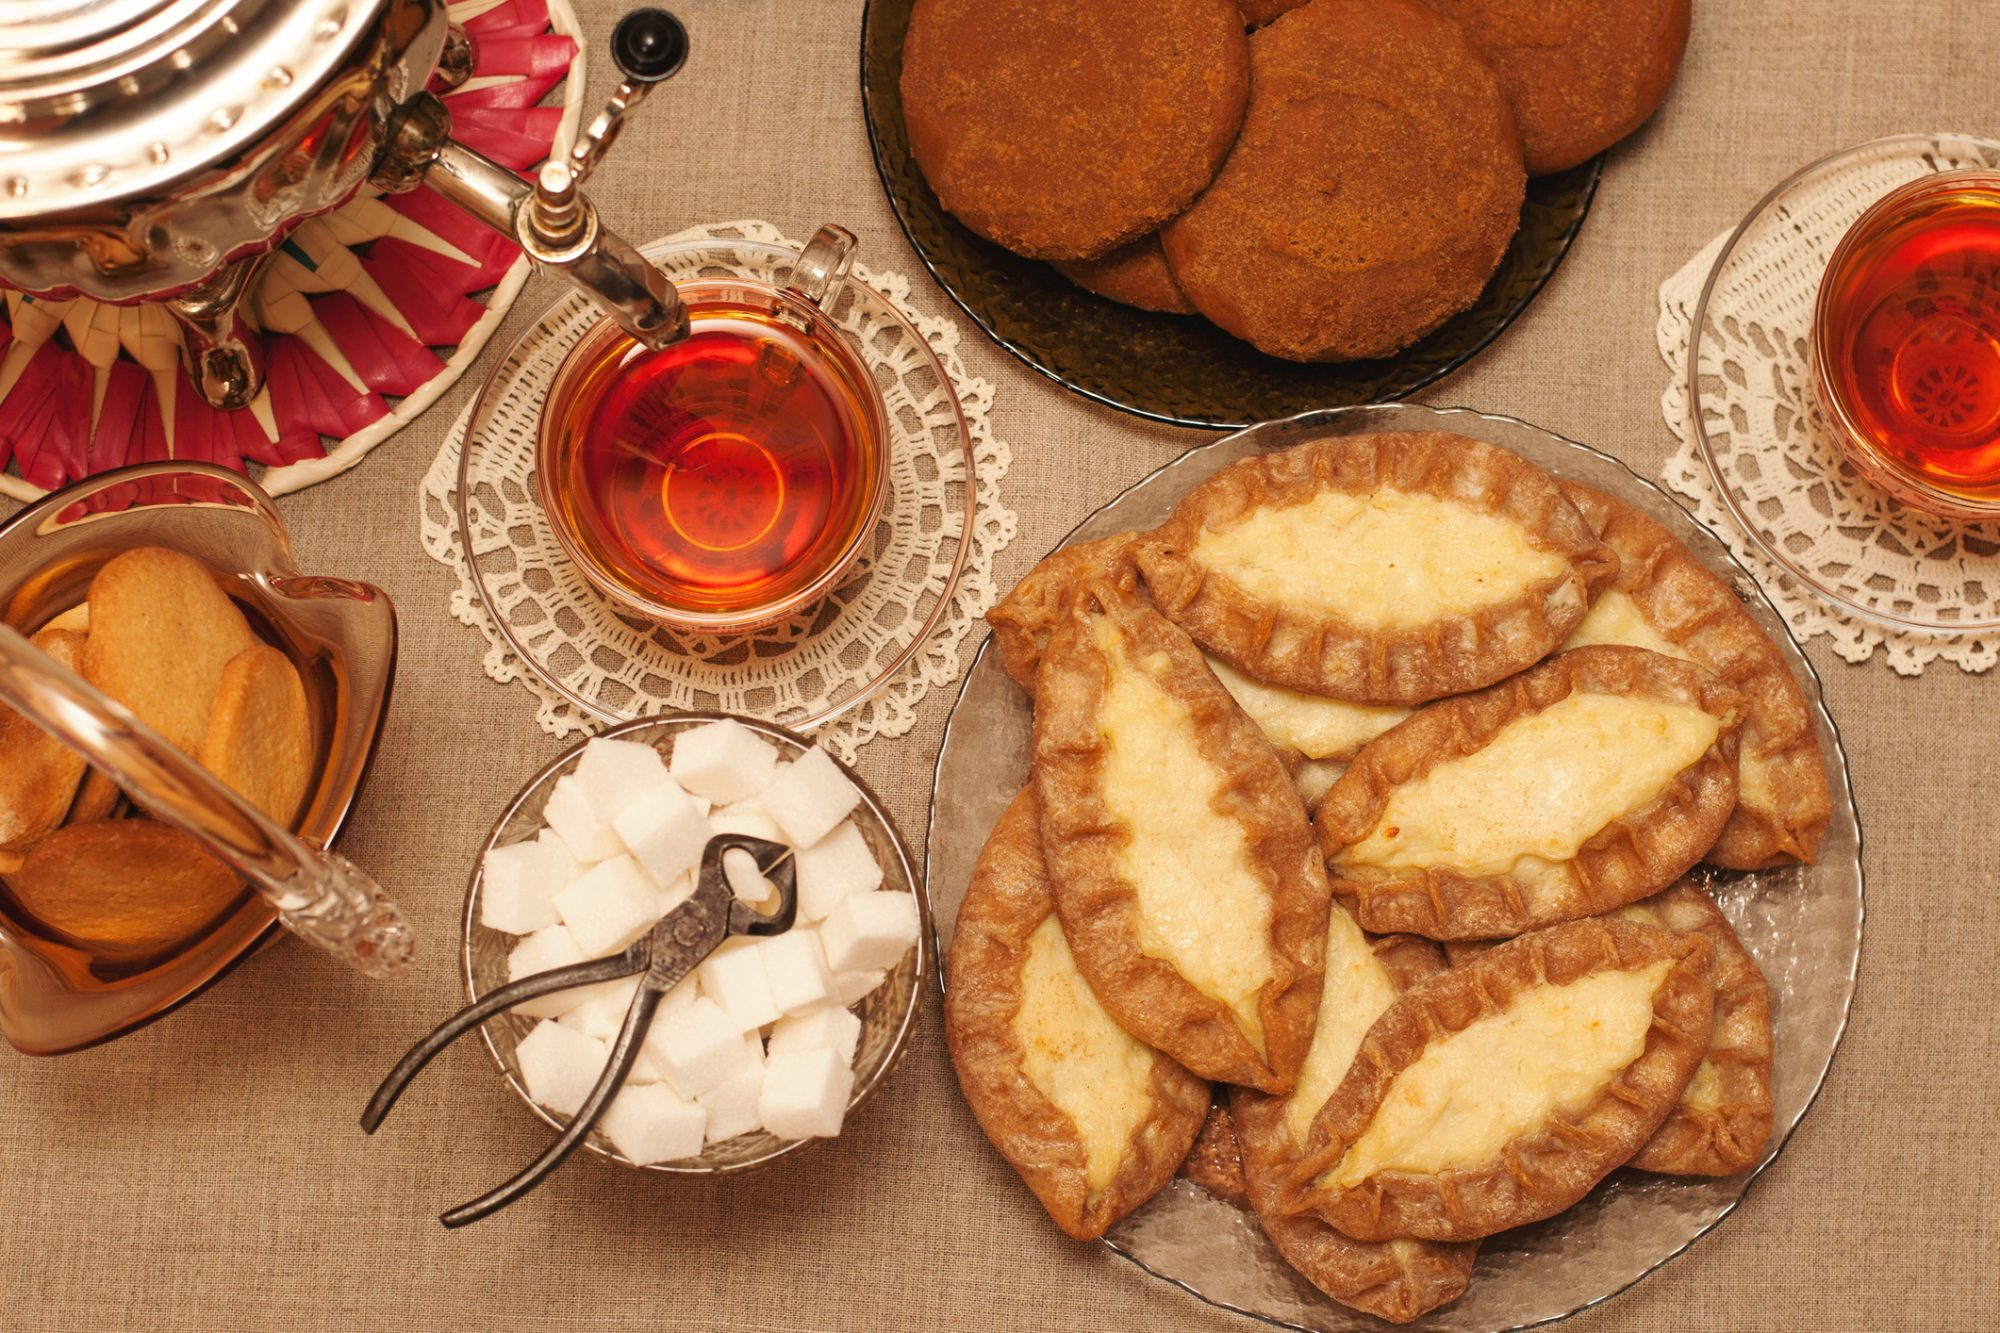 Traditional home made karelian opened pasties by rye flour, cookies